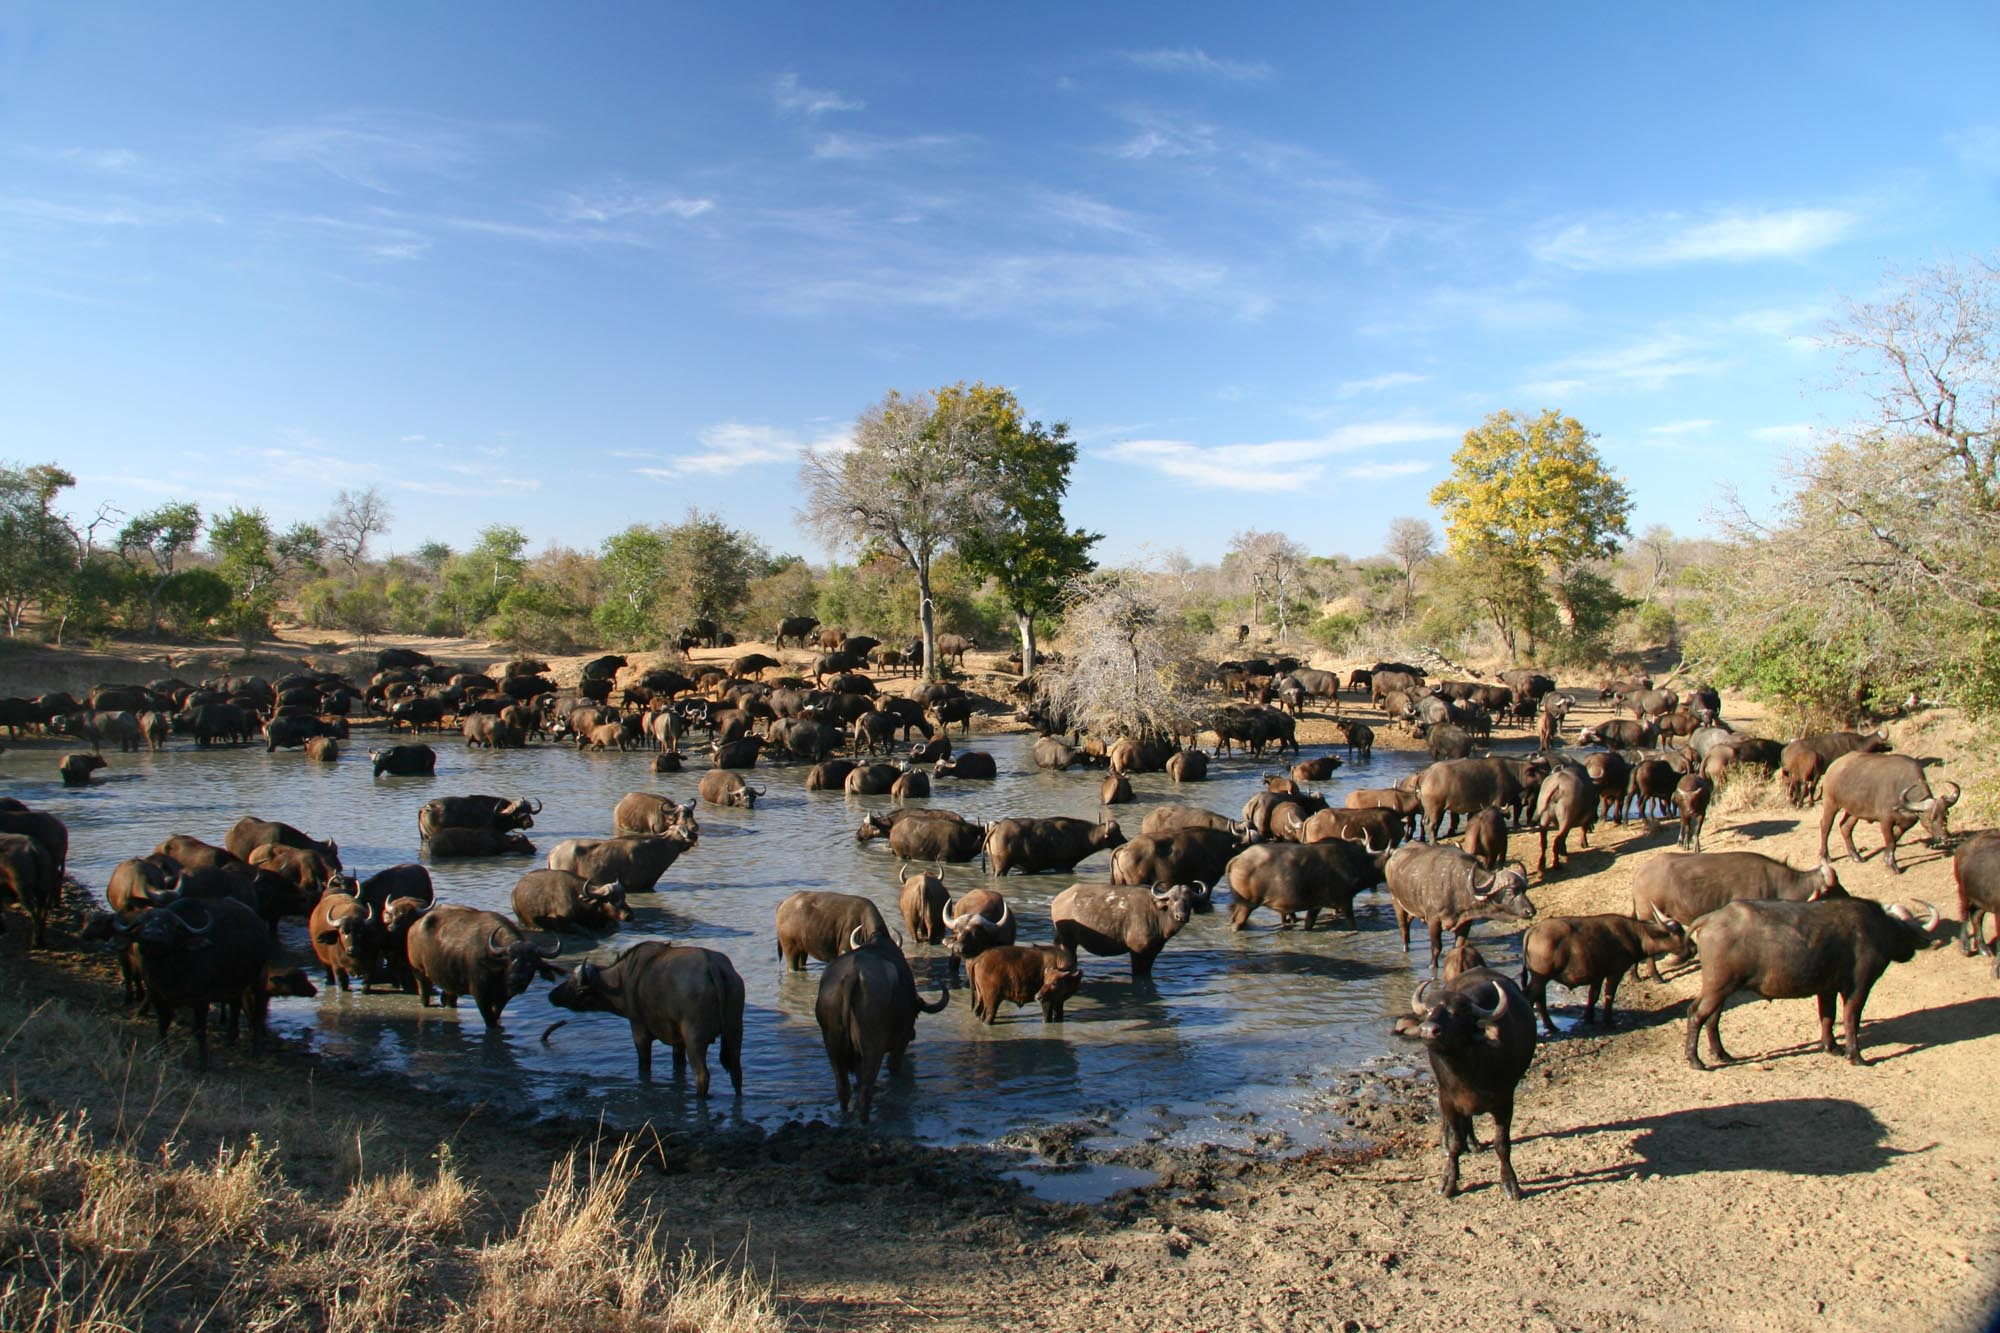 The Timbavati Private Nature Reserve